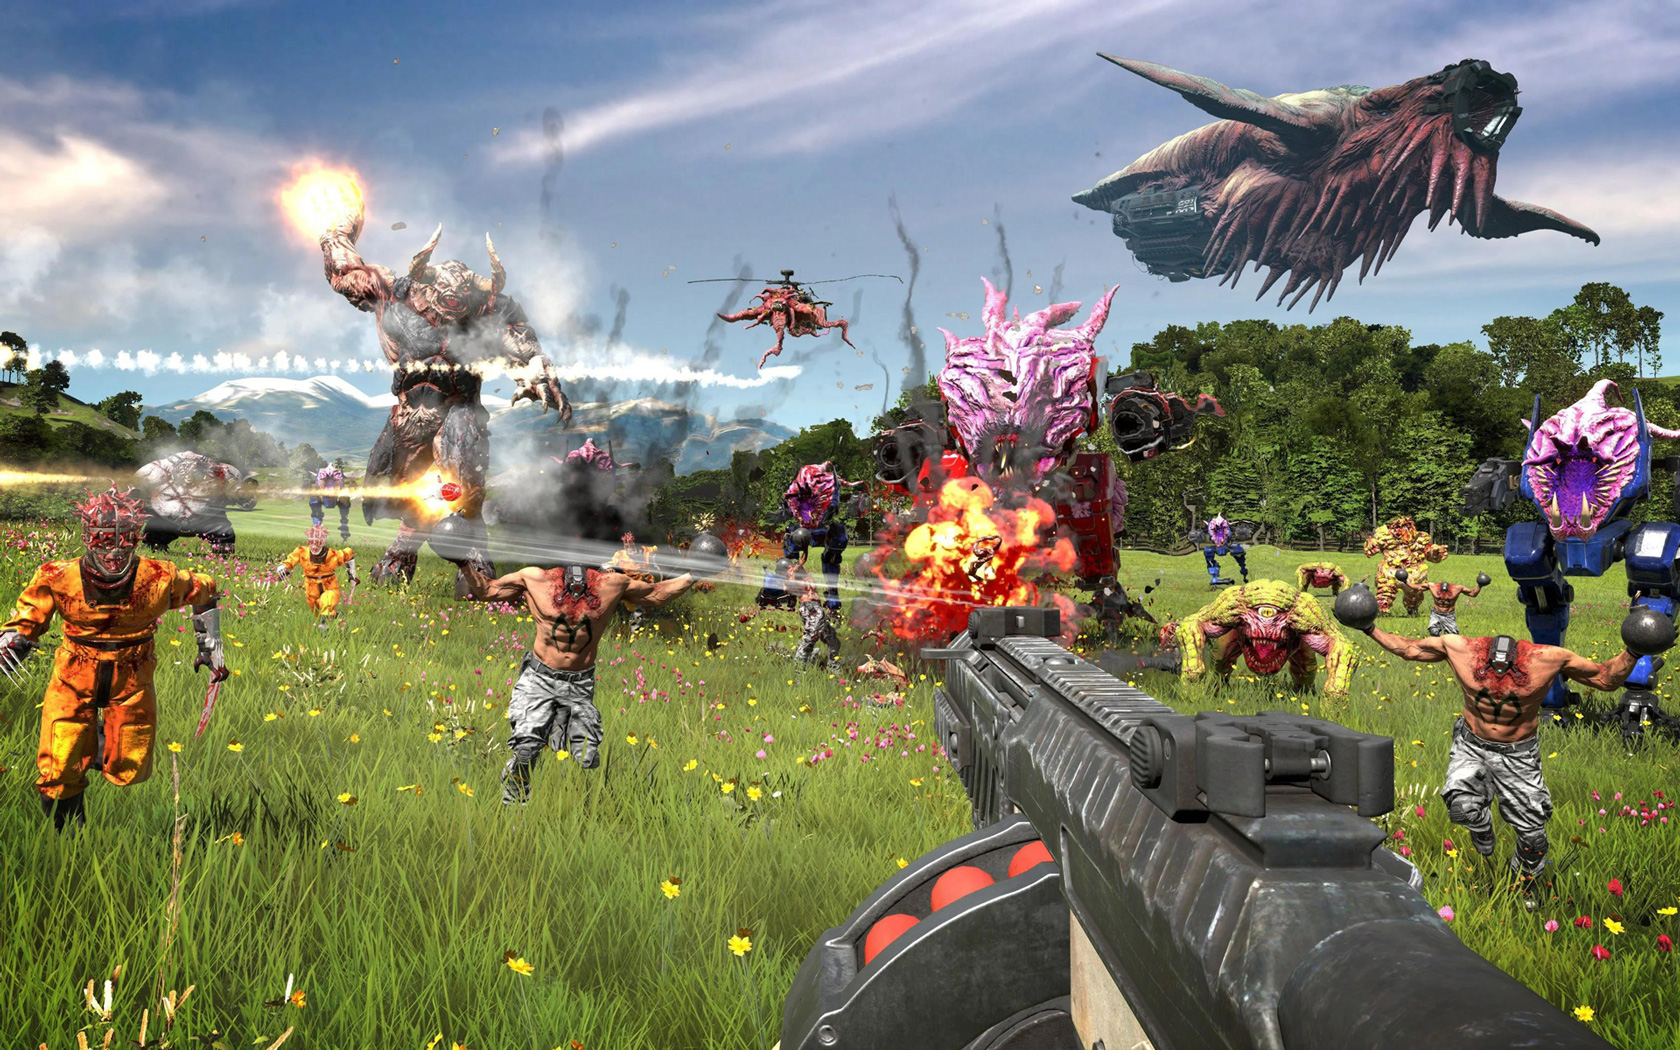 Free Serious Sam 4: Planet Badass Wallpaper in 1680x1050